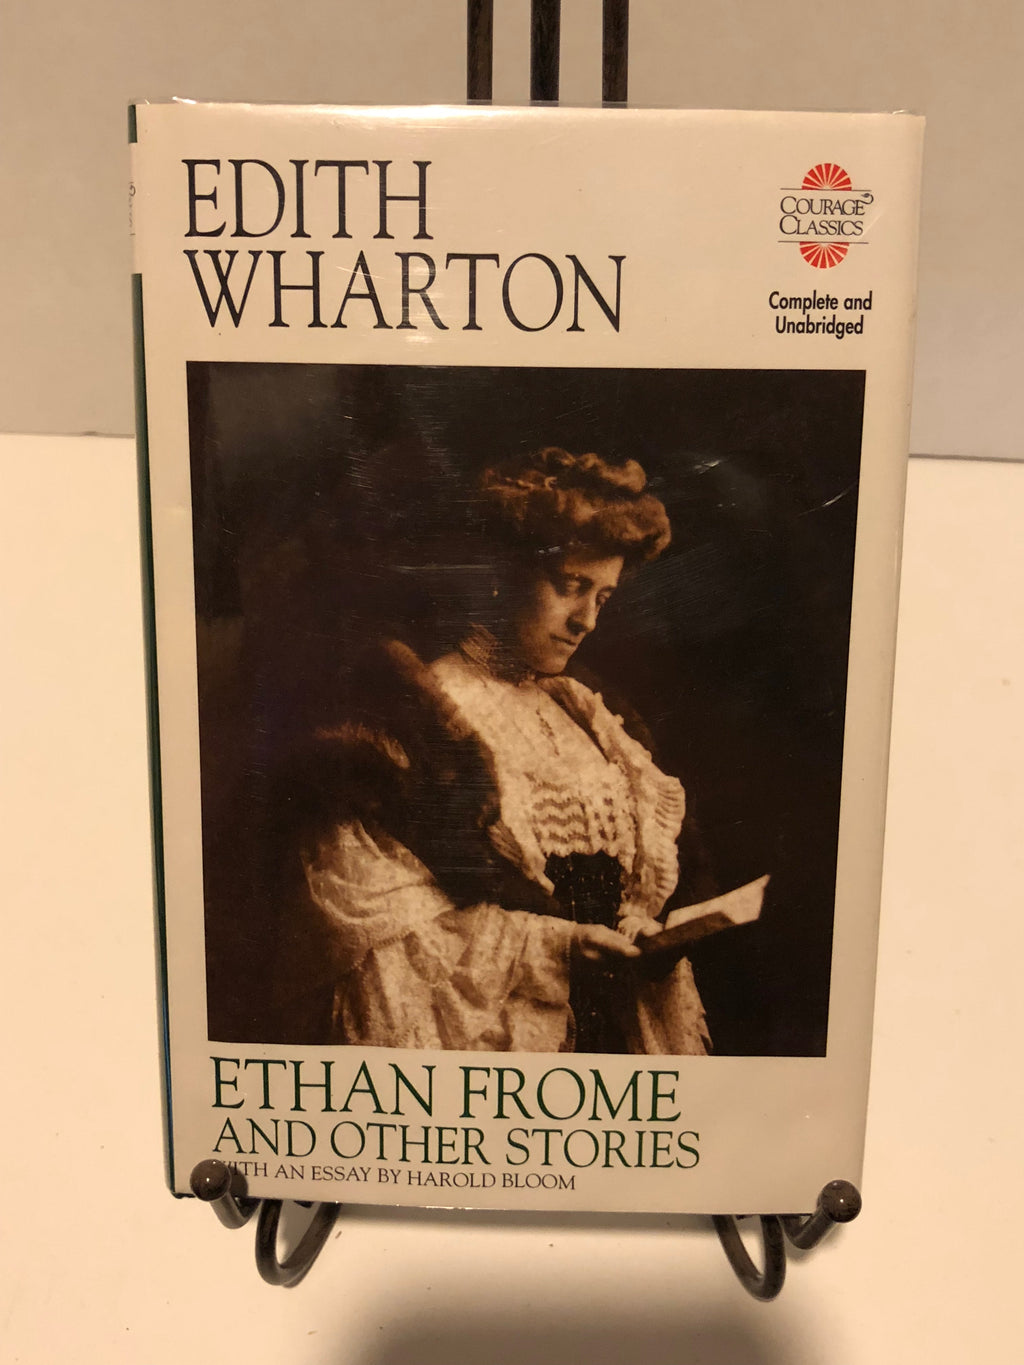 Ethan Frome and Other Stories (Courage Classics)